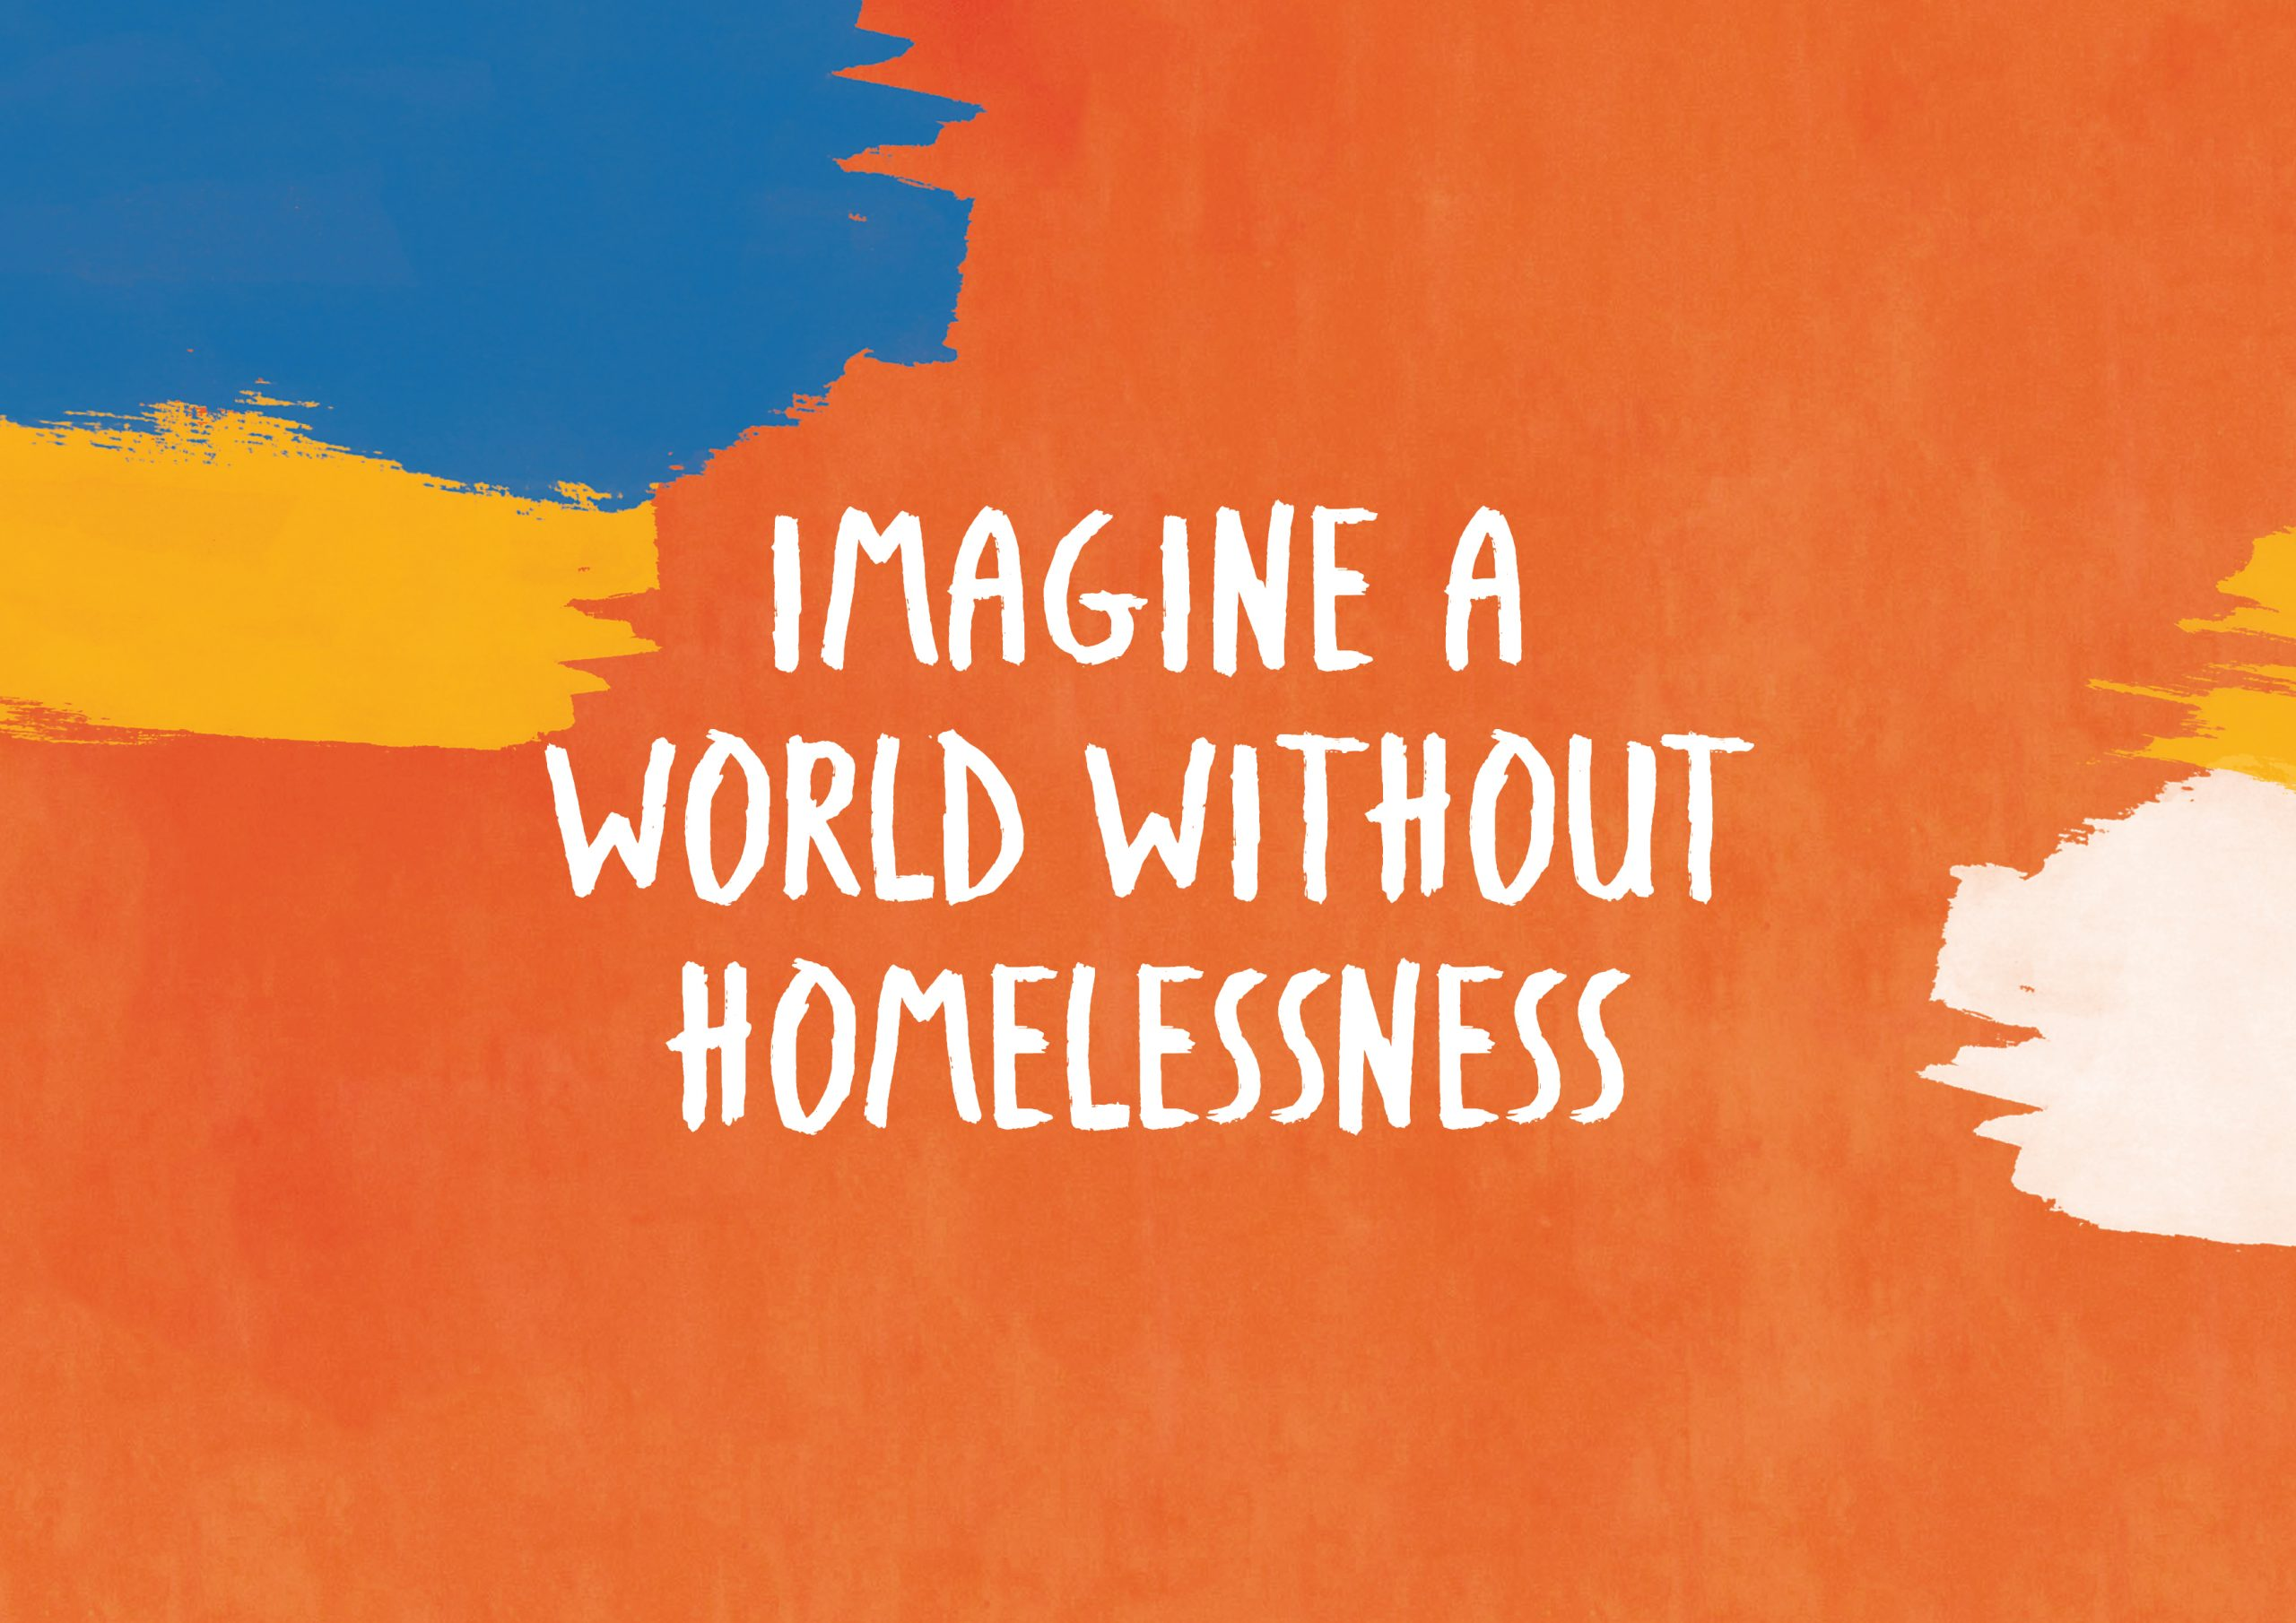 Llamau -Imagine a world without homelessness